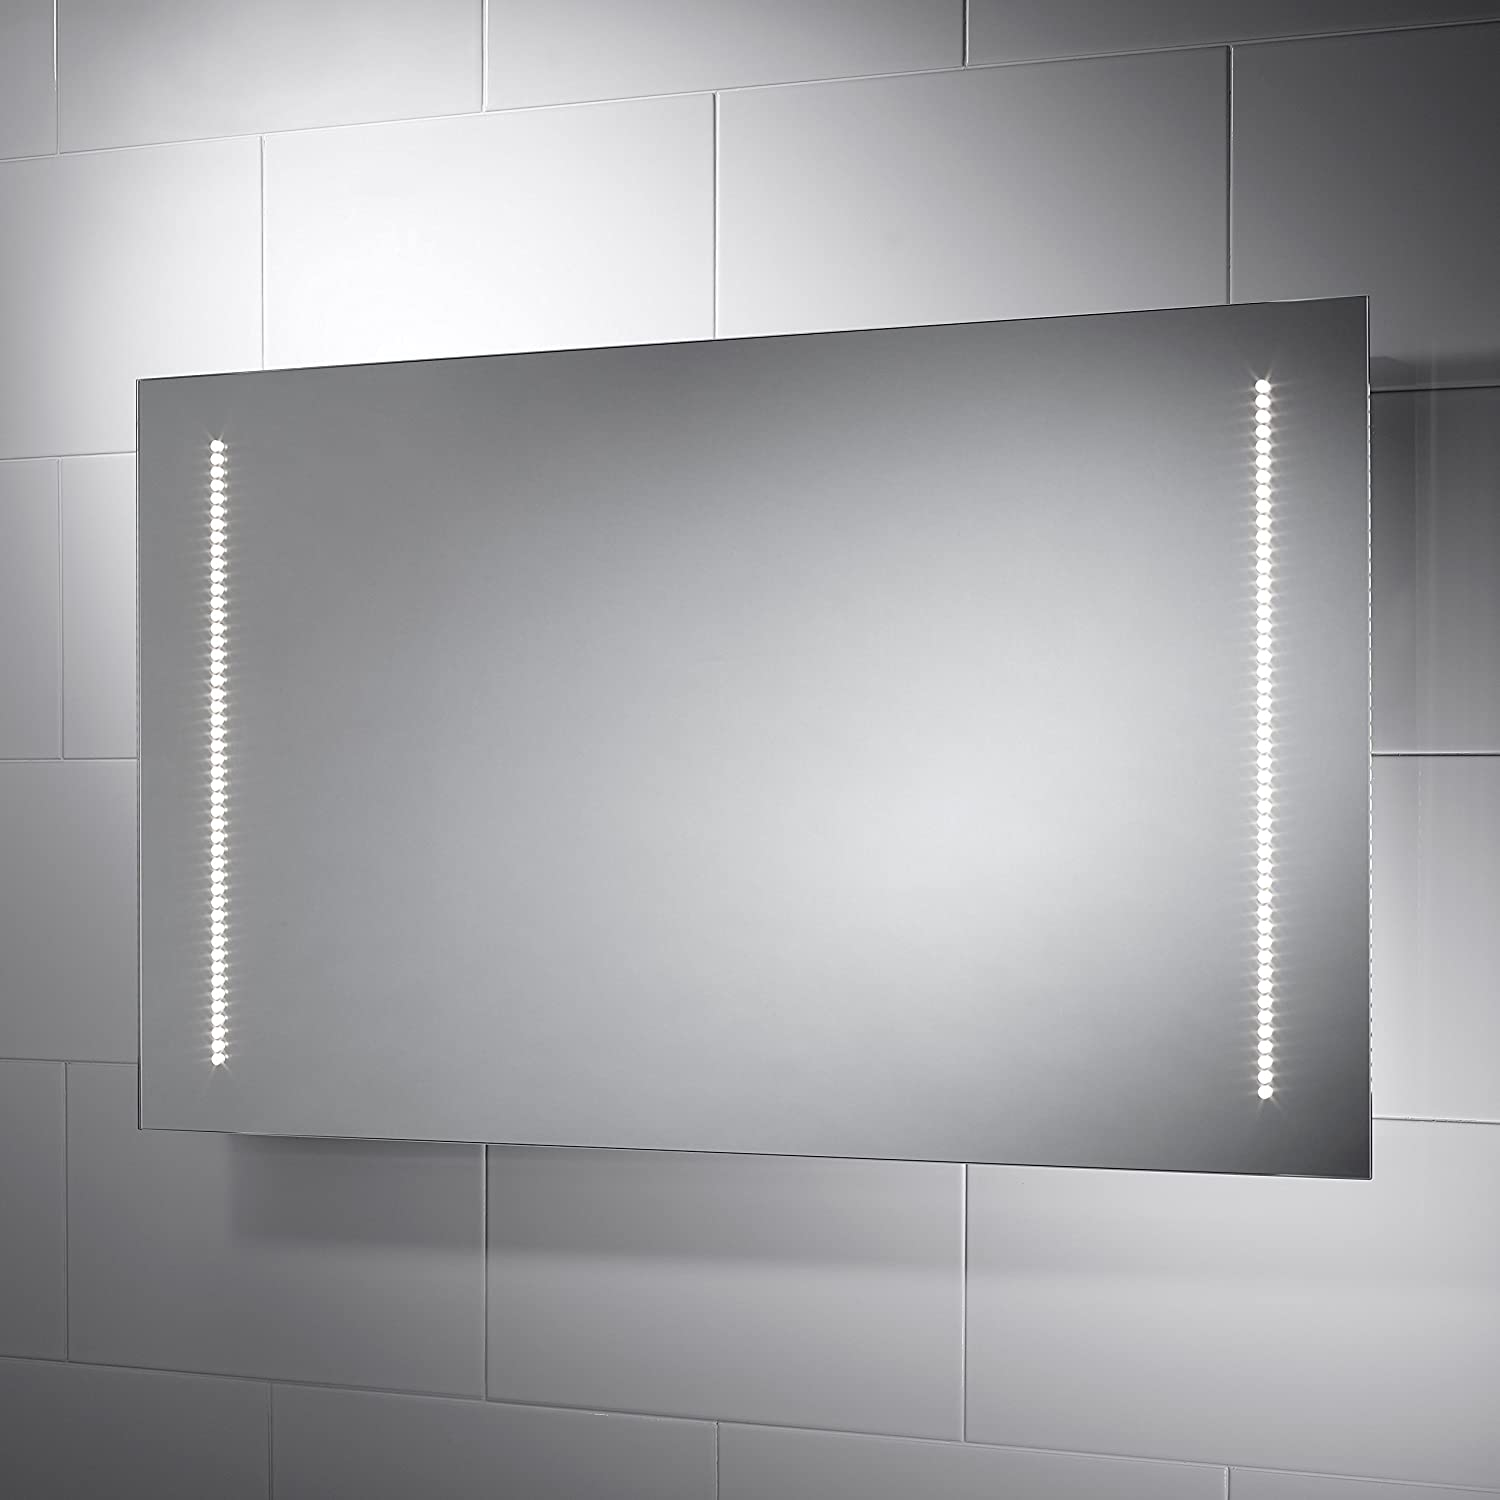 Large Rectangular Assisi LED Illuminated Bathroom Mirror With Lights Size 1000mmW X 600mmH Infra Red Sensor Switch Dual Voltage Shaver Socket